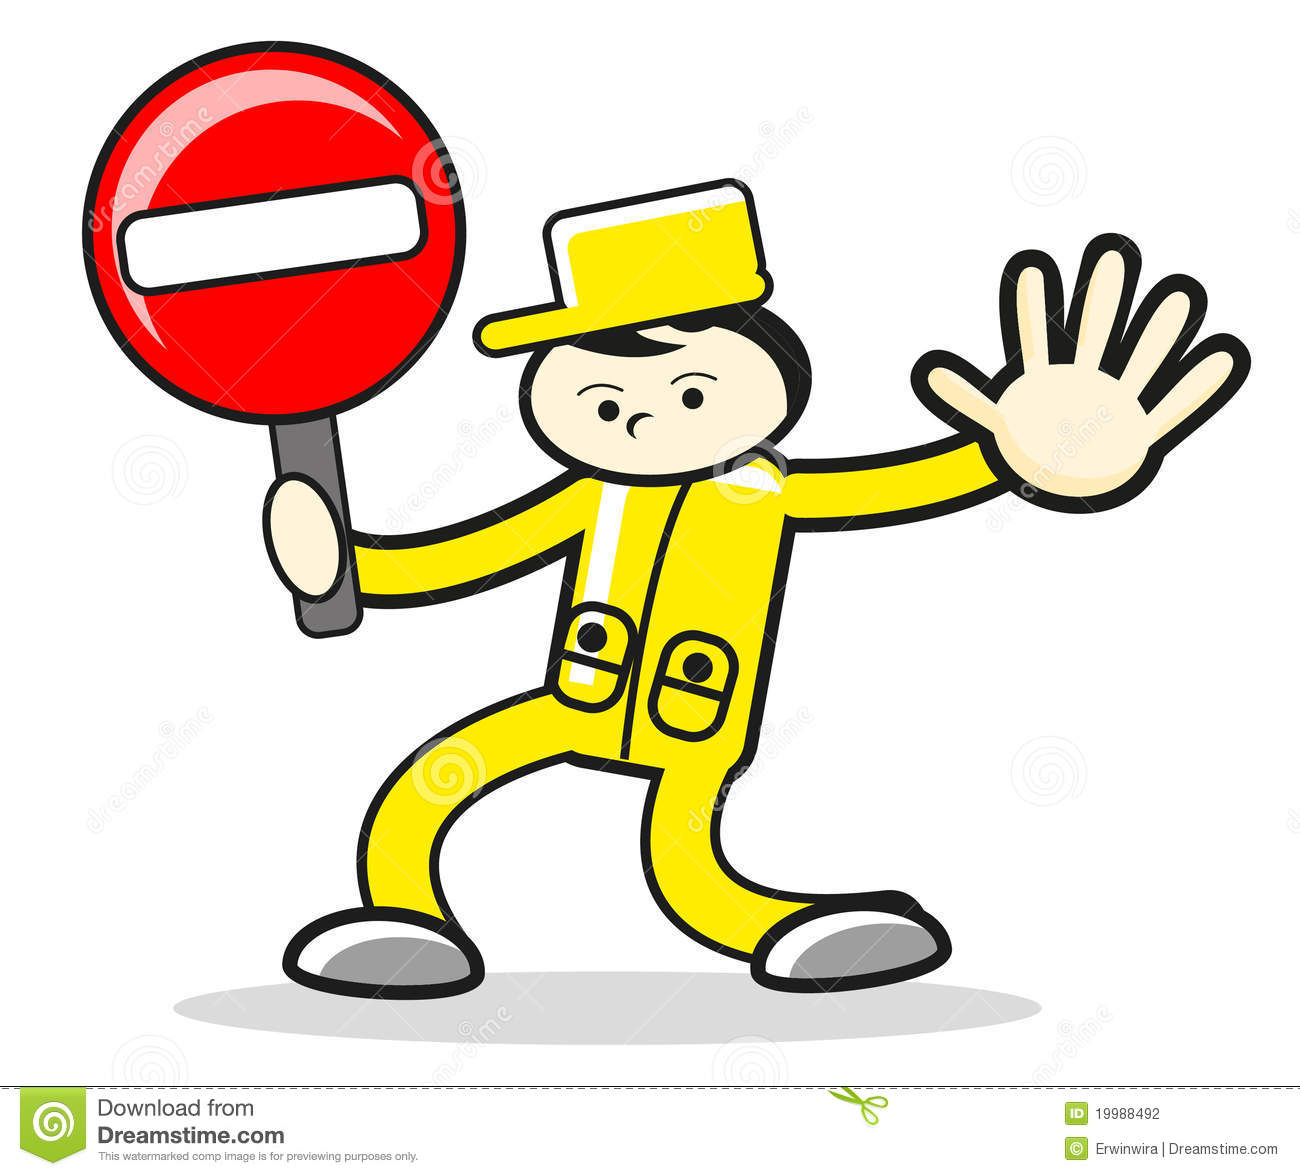 character cartoon man stop sign stock vector illustration of rh dreamstime com bus stop sign cartoon stop sign cartoon pic